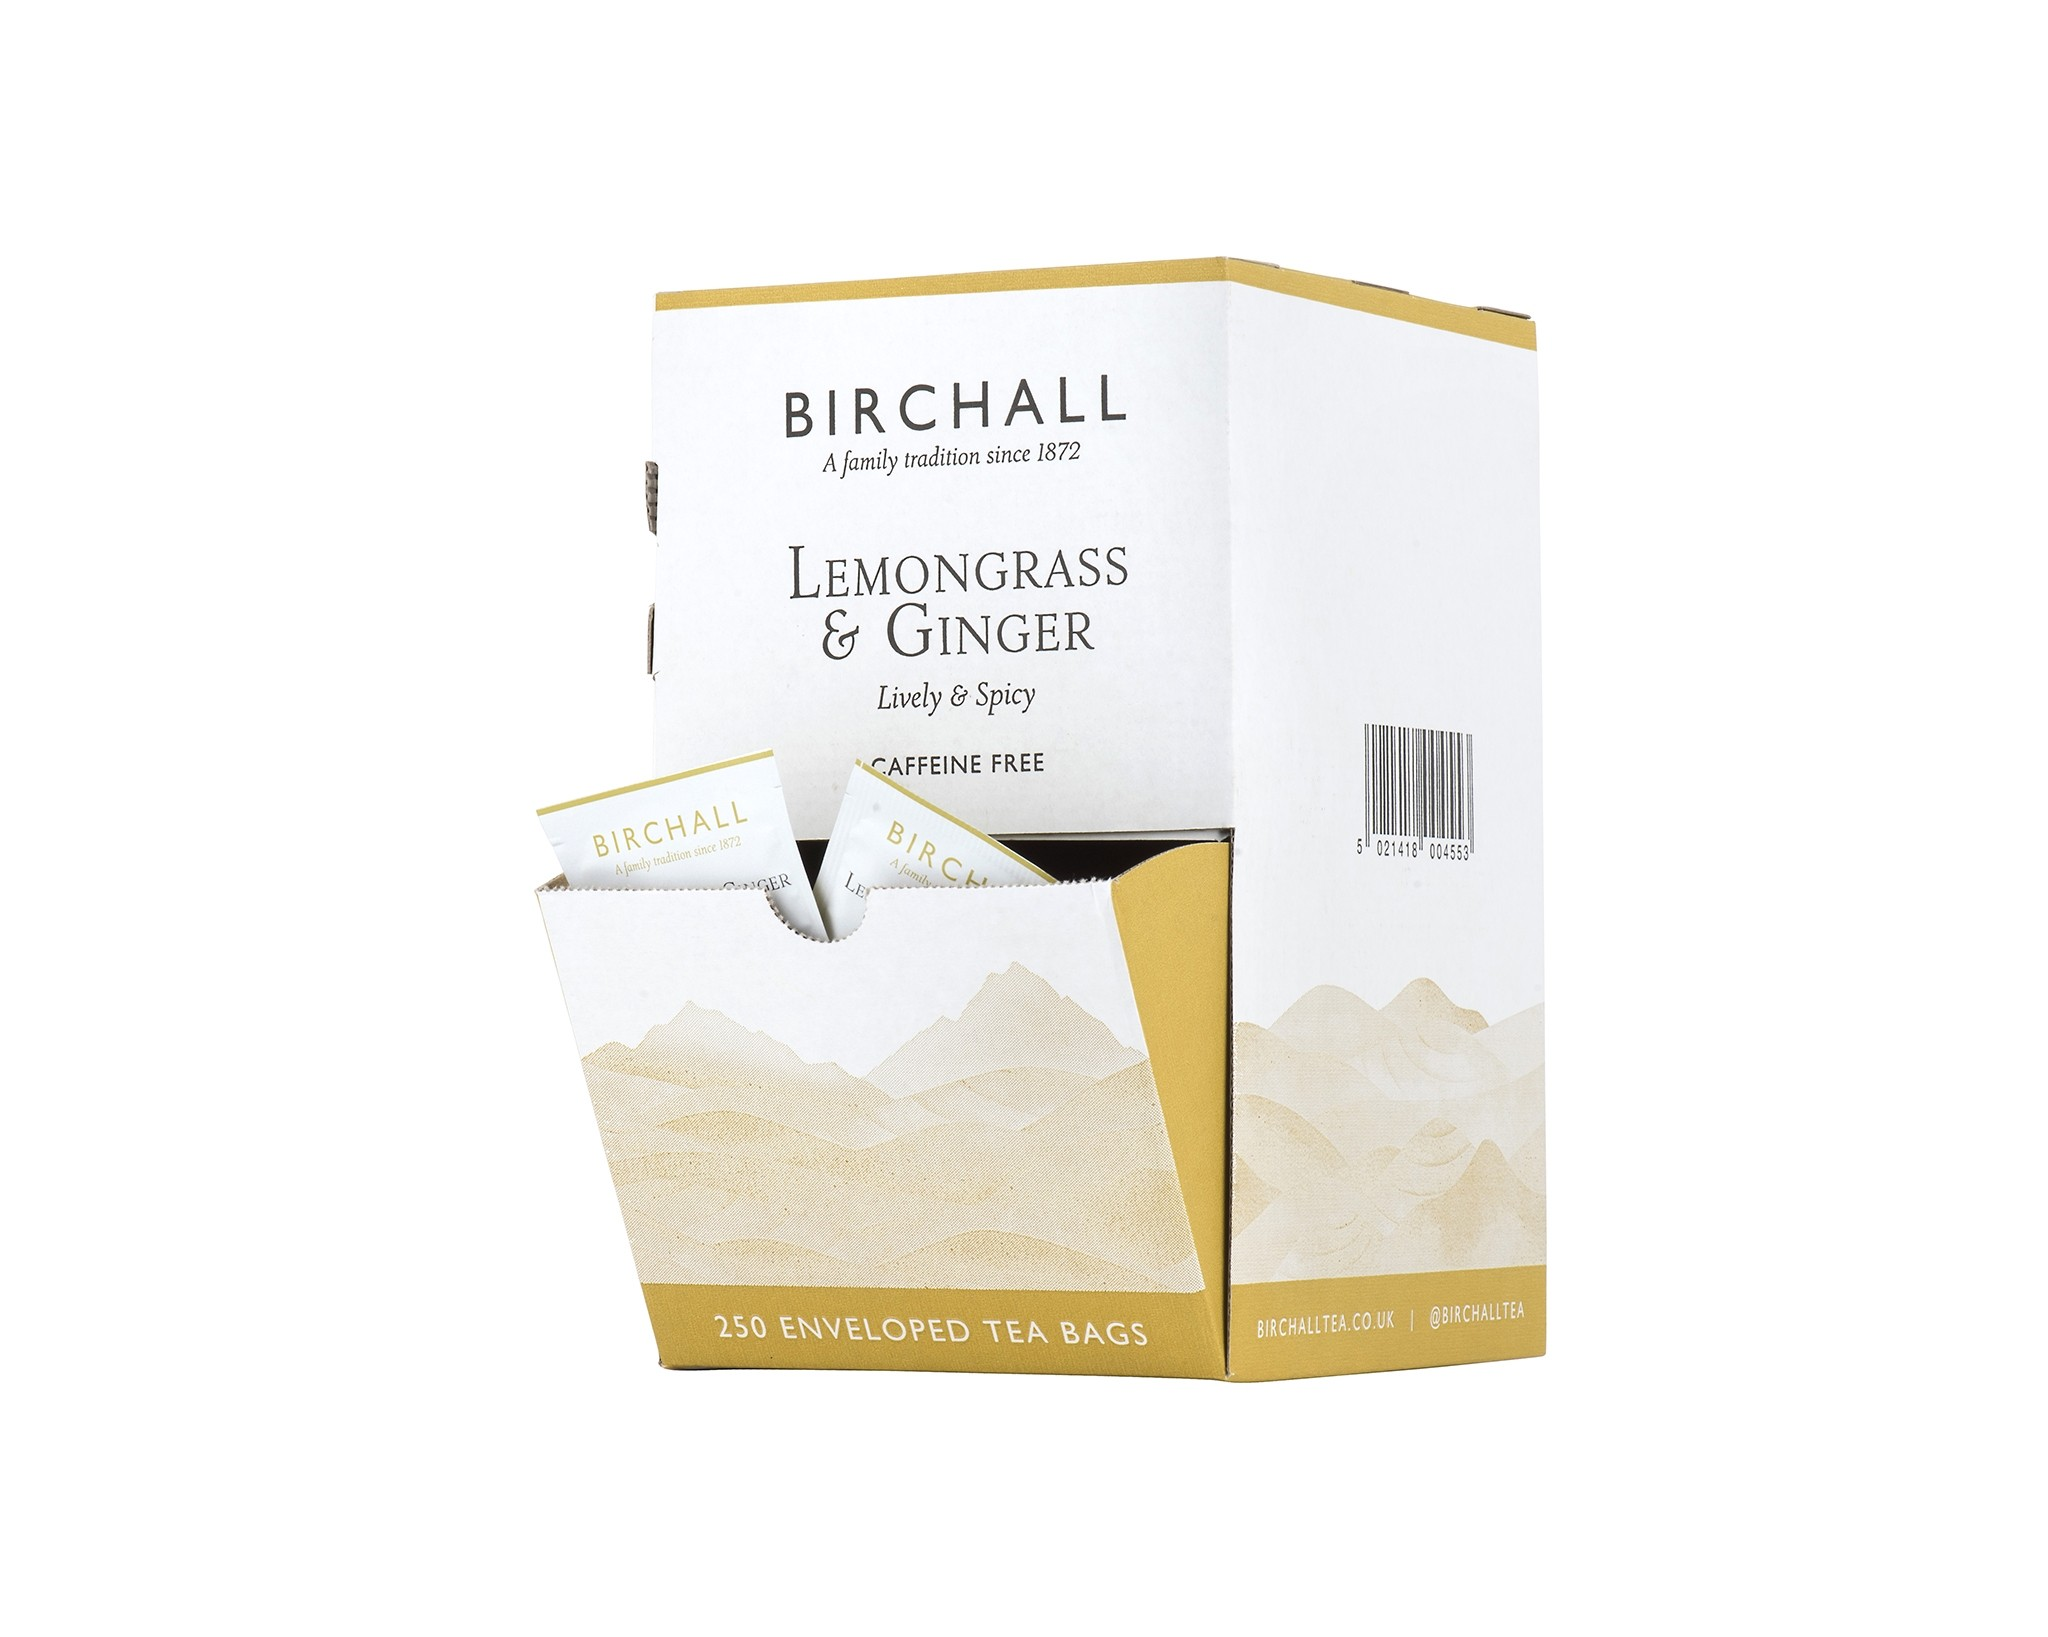 Birchall Lemongrass & Ginger 250 Envelopes (1 Units)